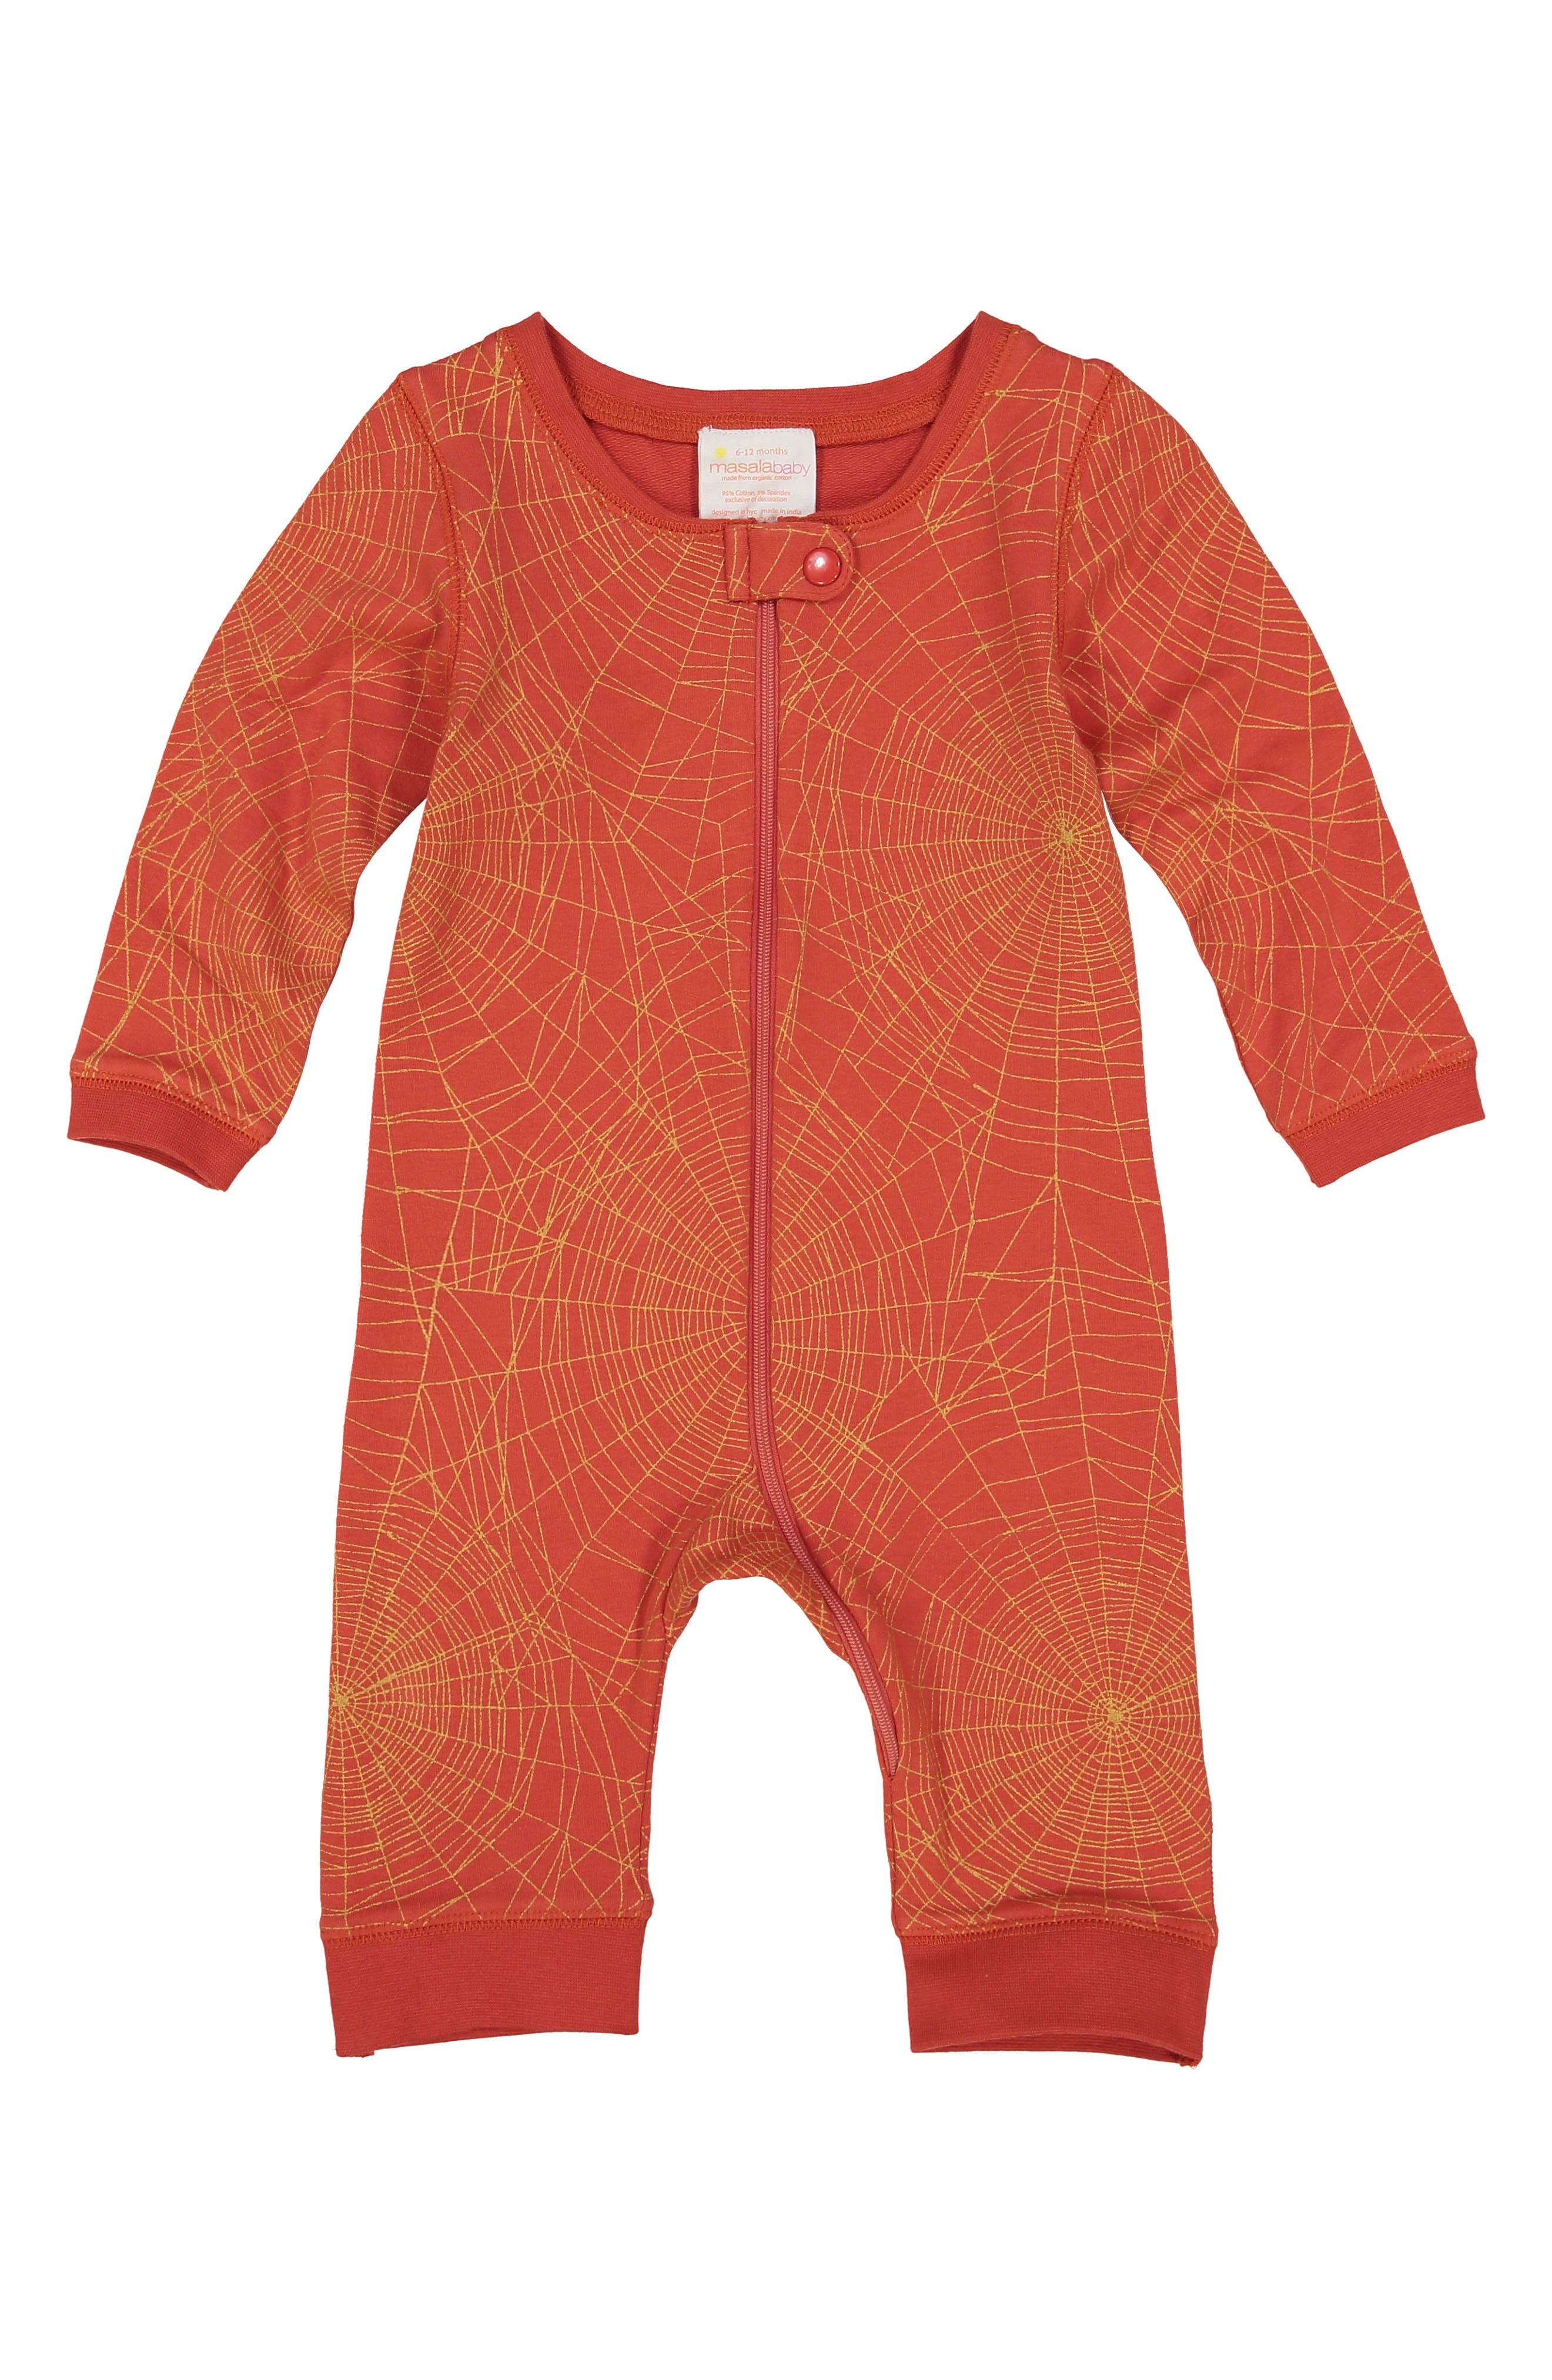 Golden Web Stretch Organic Cotton One-Piece,                             Main thumbnail 1, color,                             RED